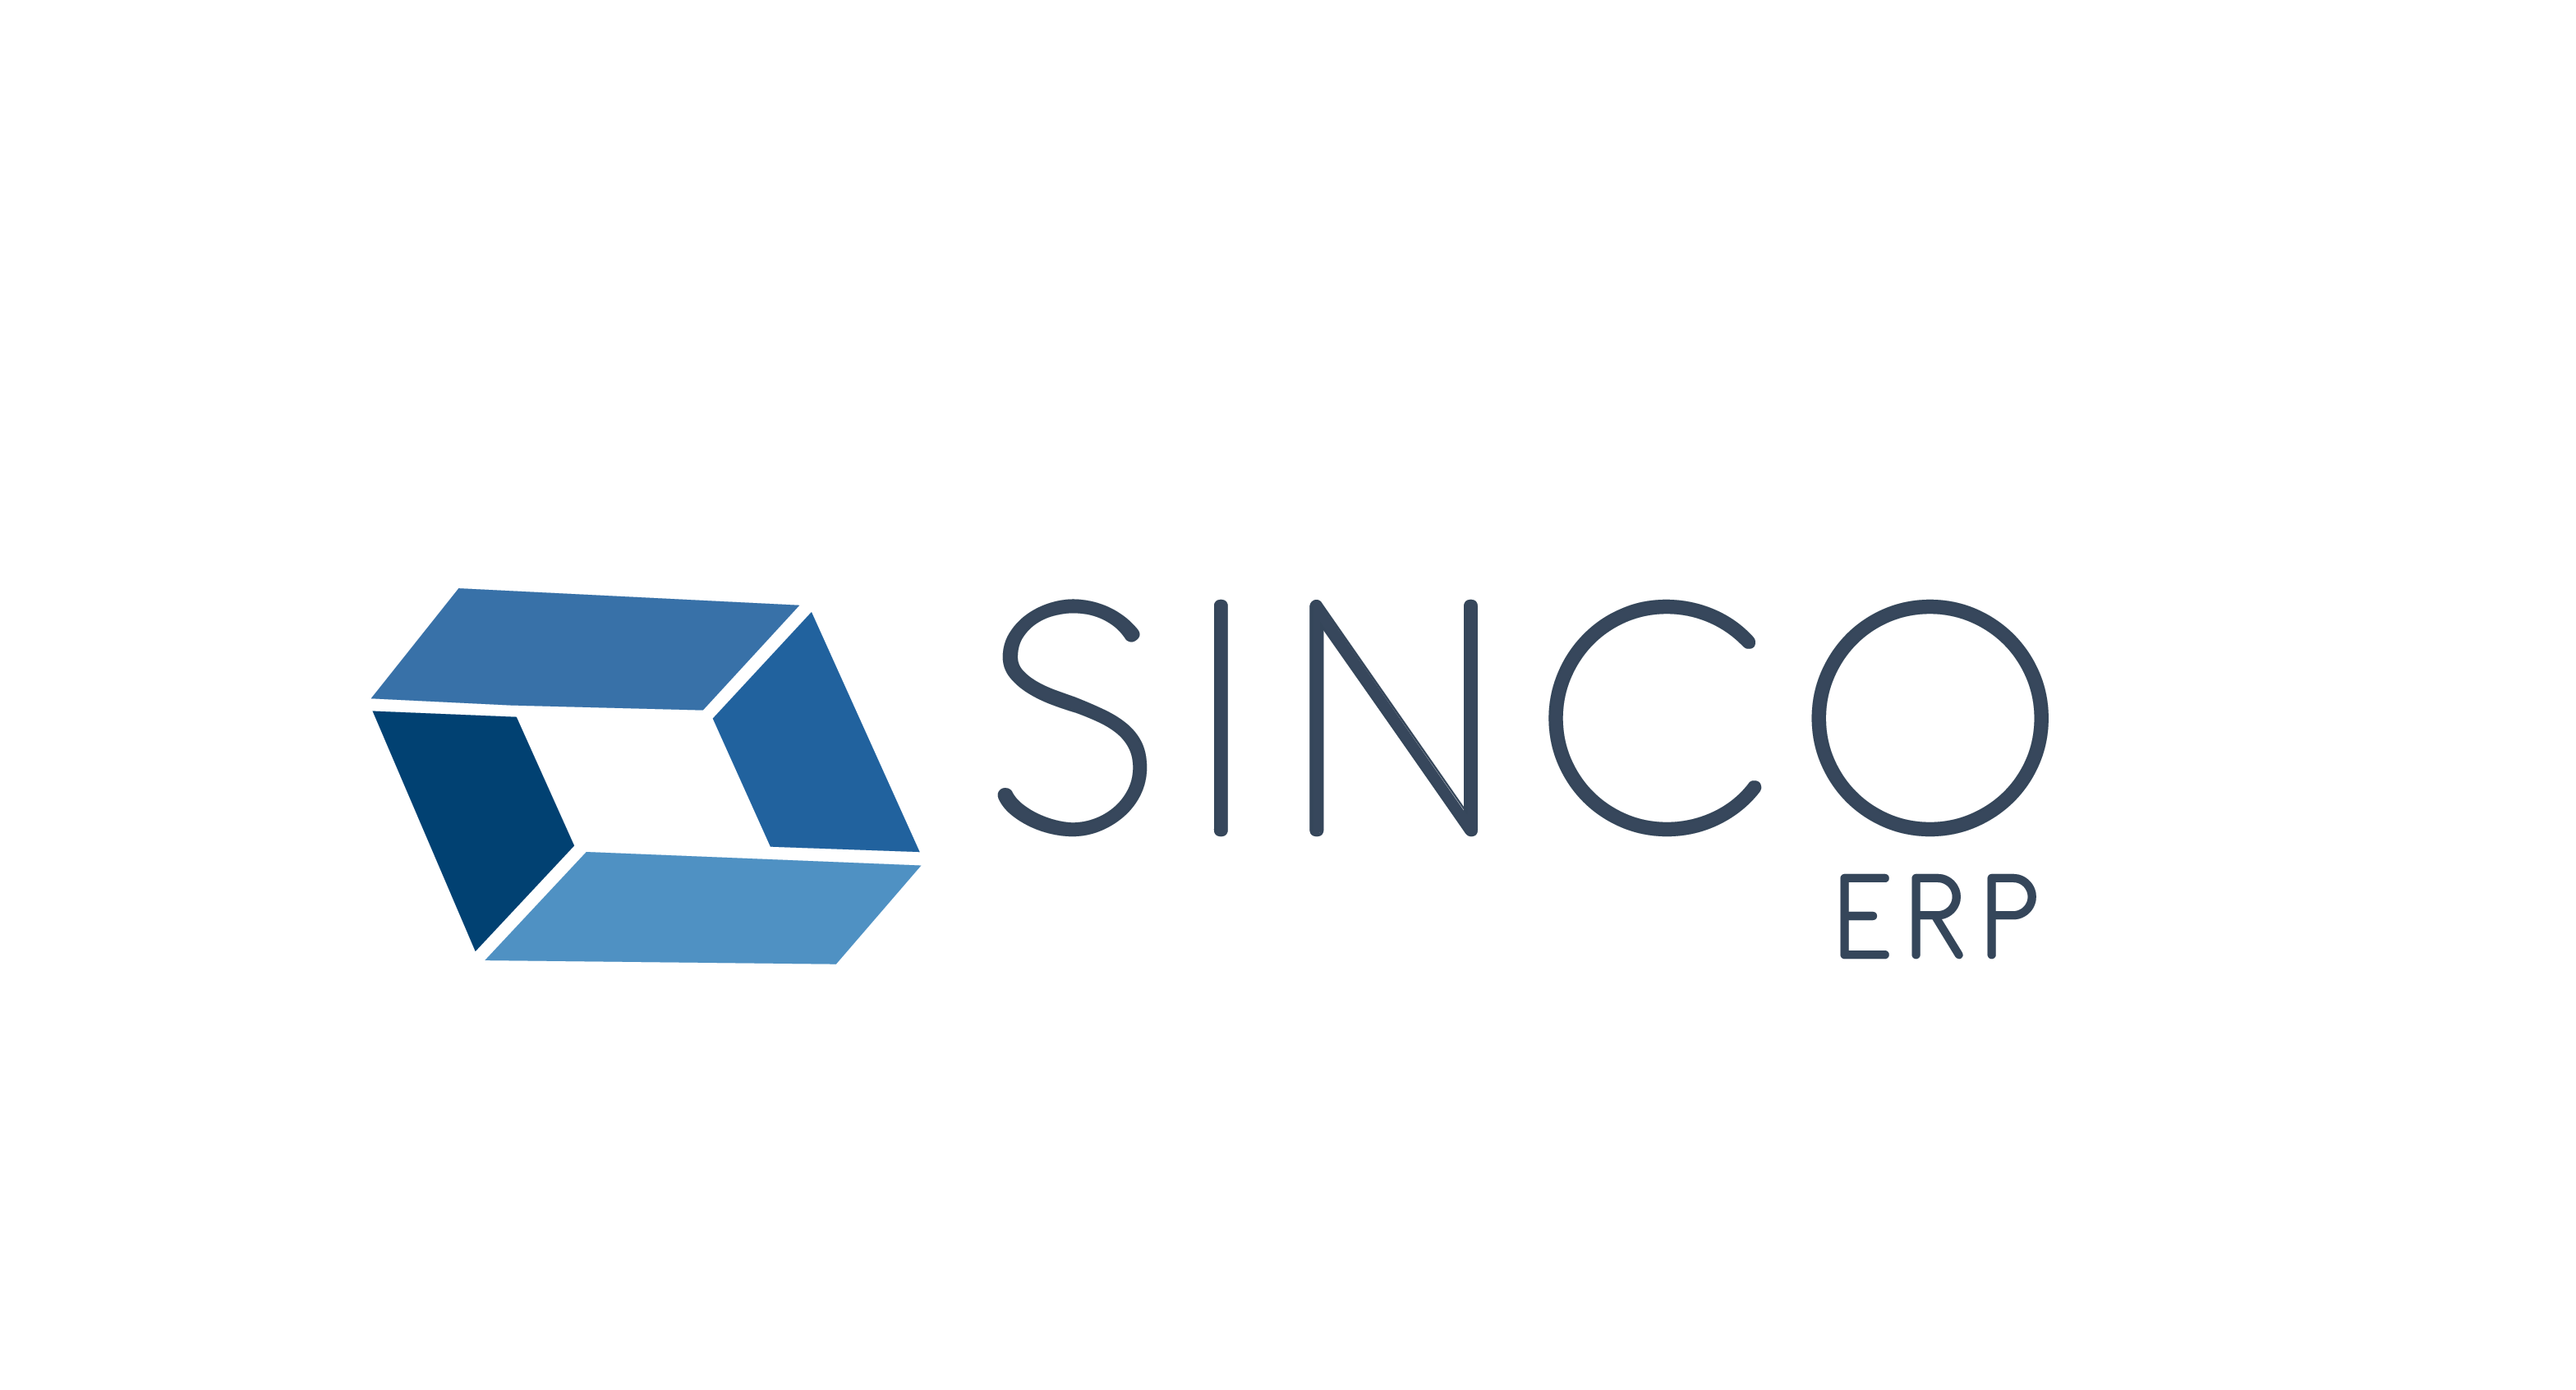 SINCO ERP - Software de Gestión Especializado para Constructoras